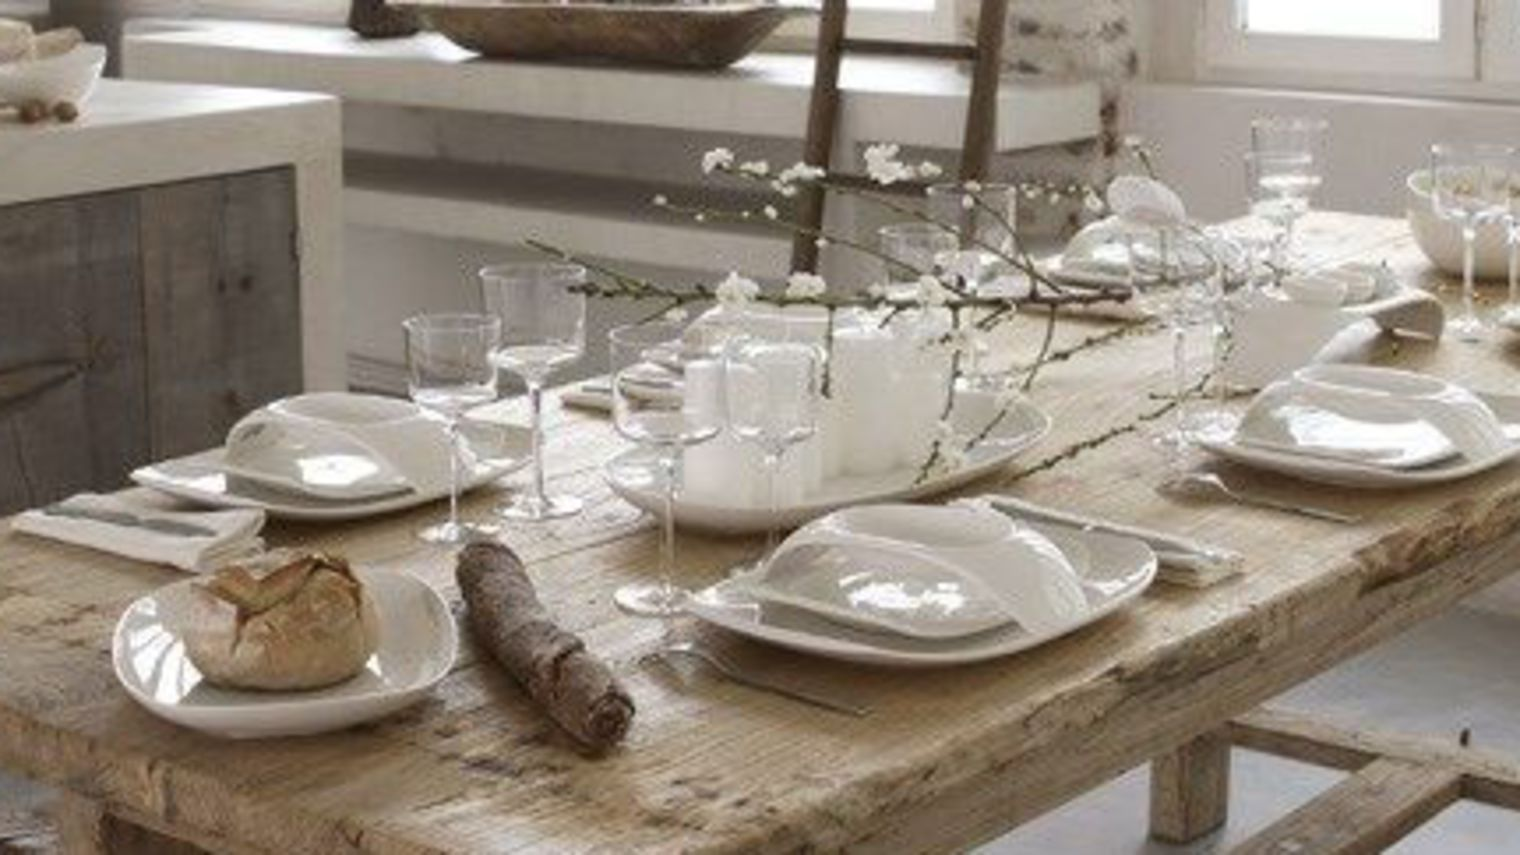 Comment faire une belle table for Deco de table pour noel